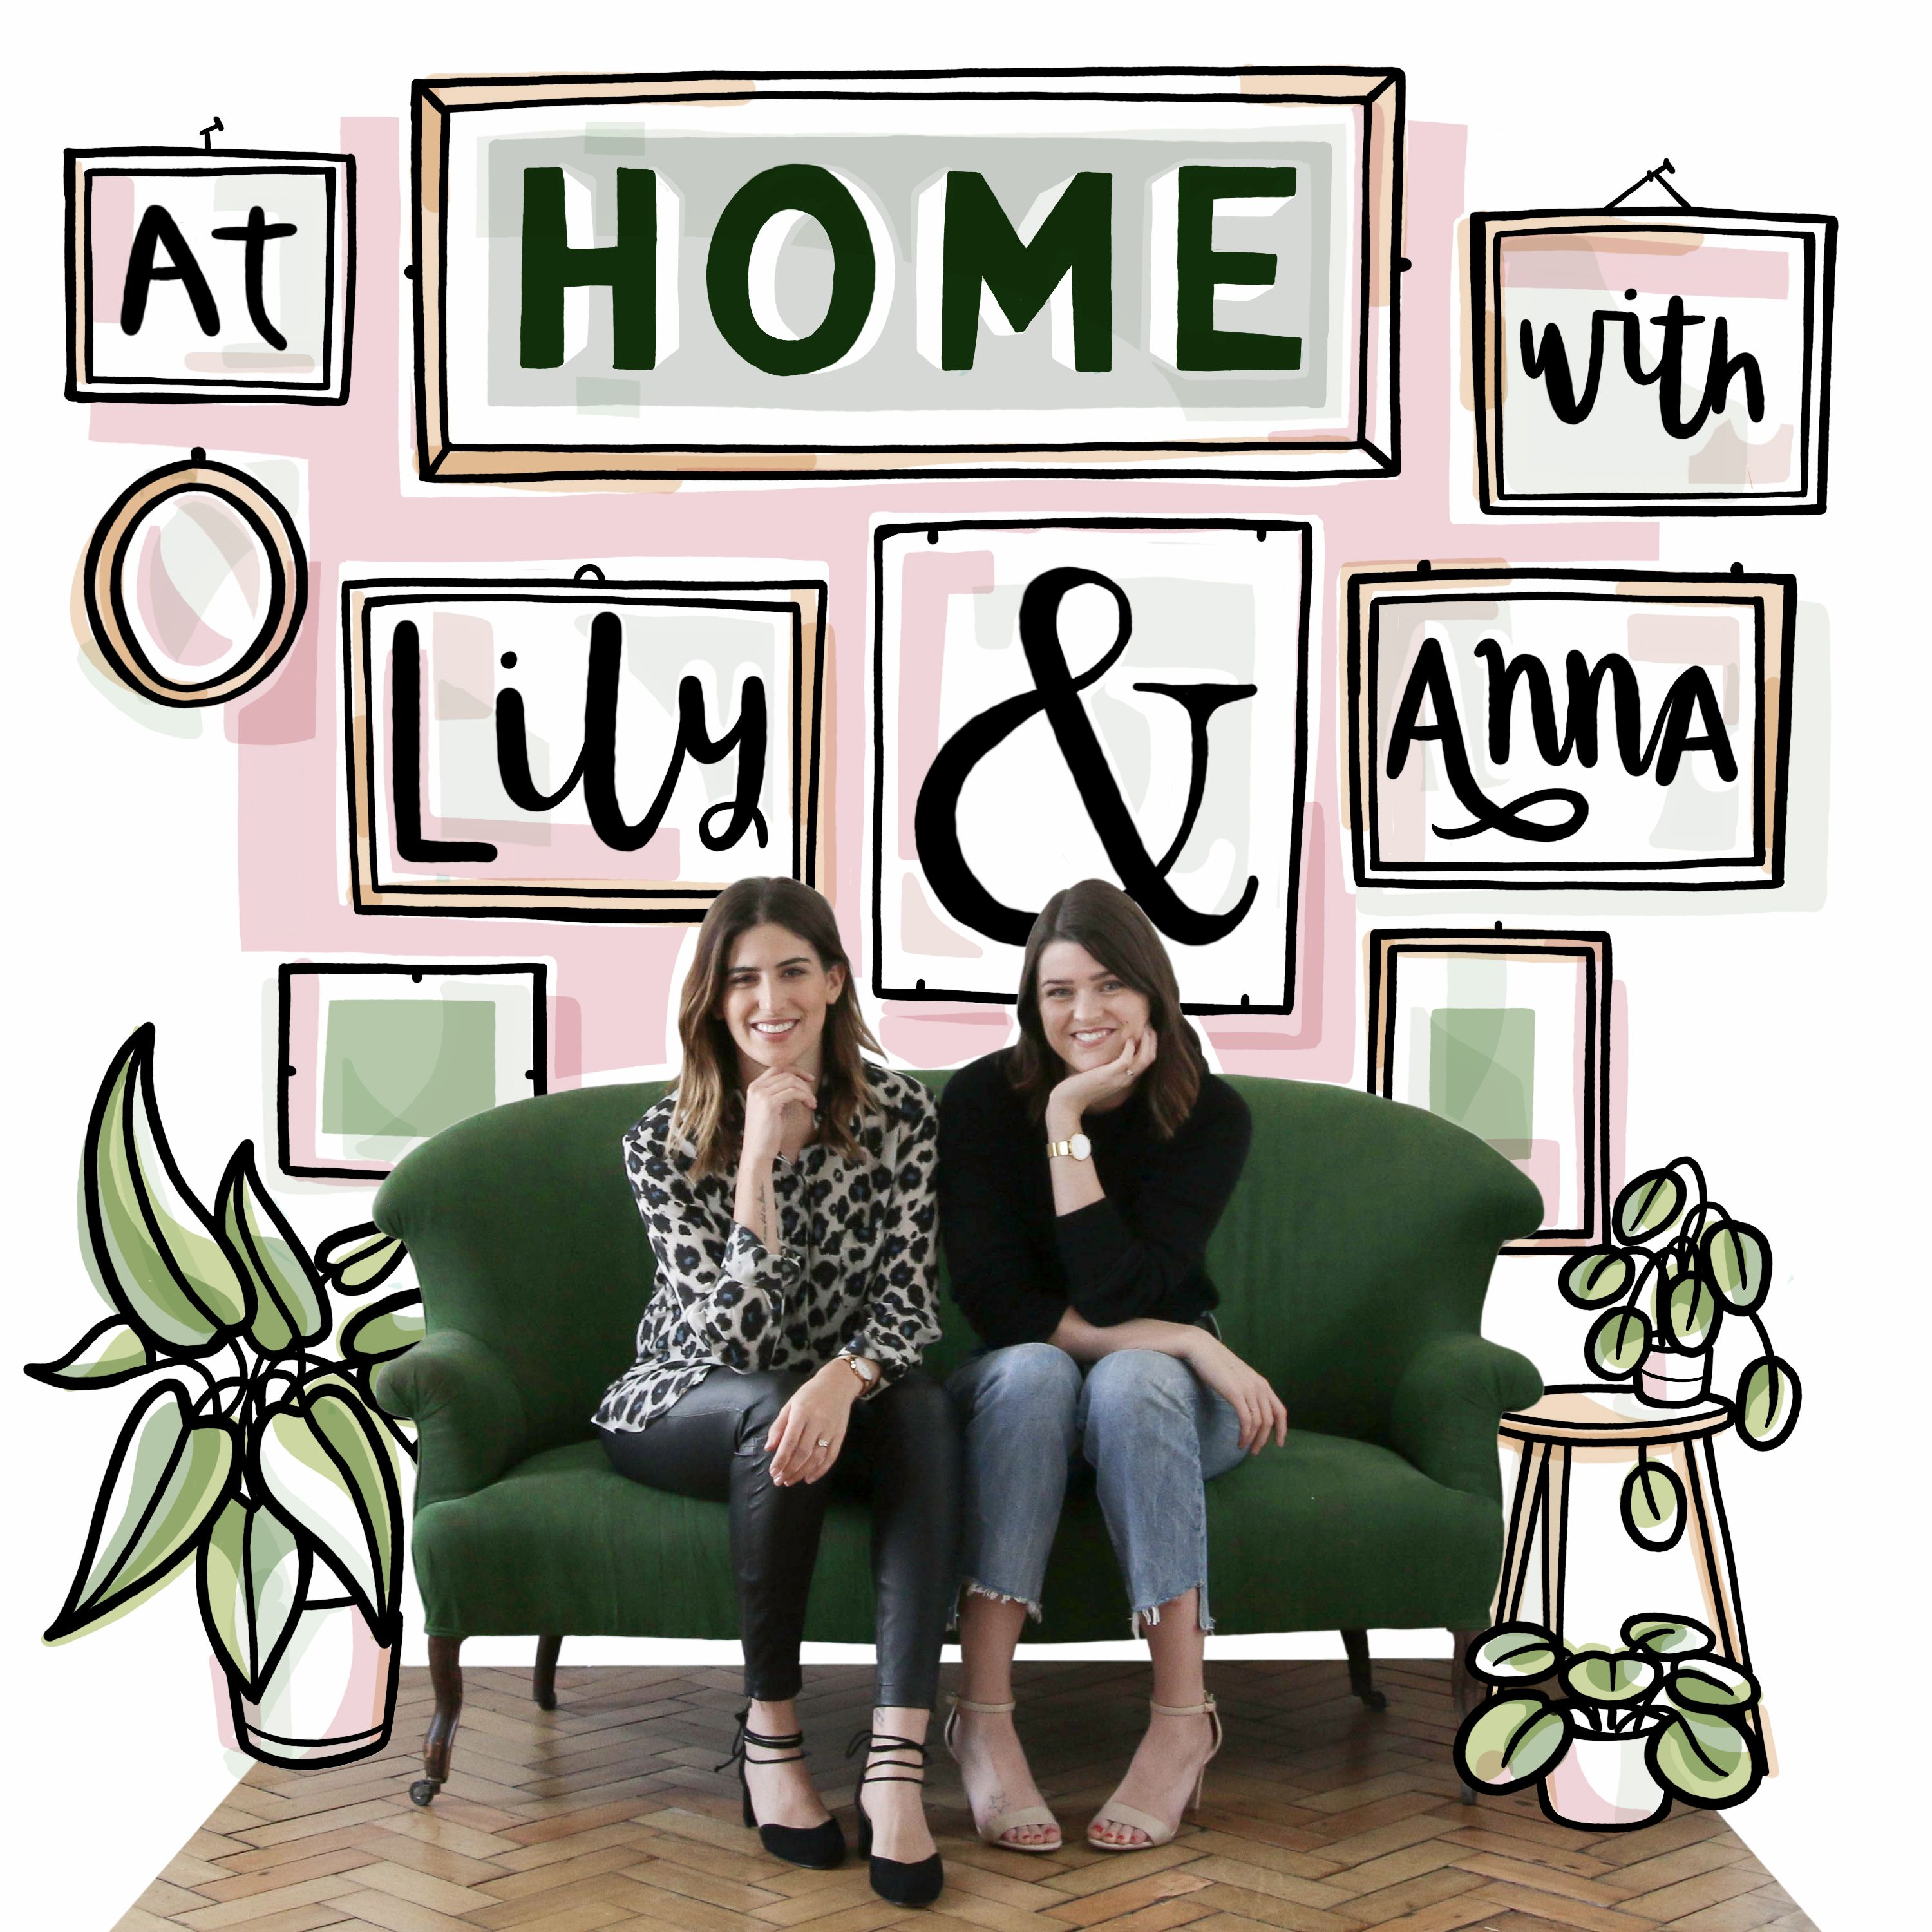 TRAILER: At Home With Lily & Anna